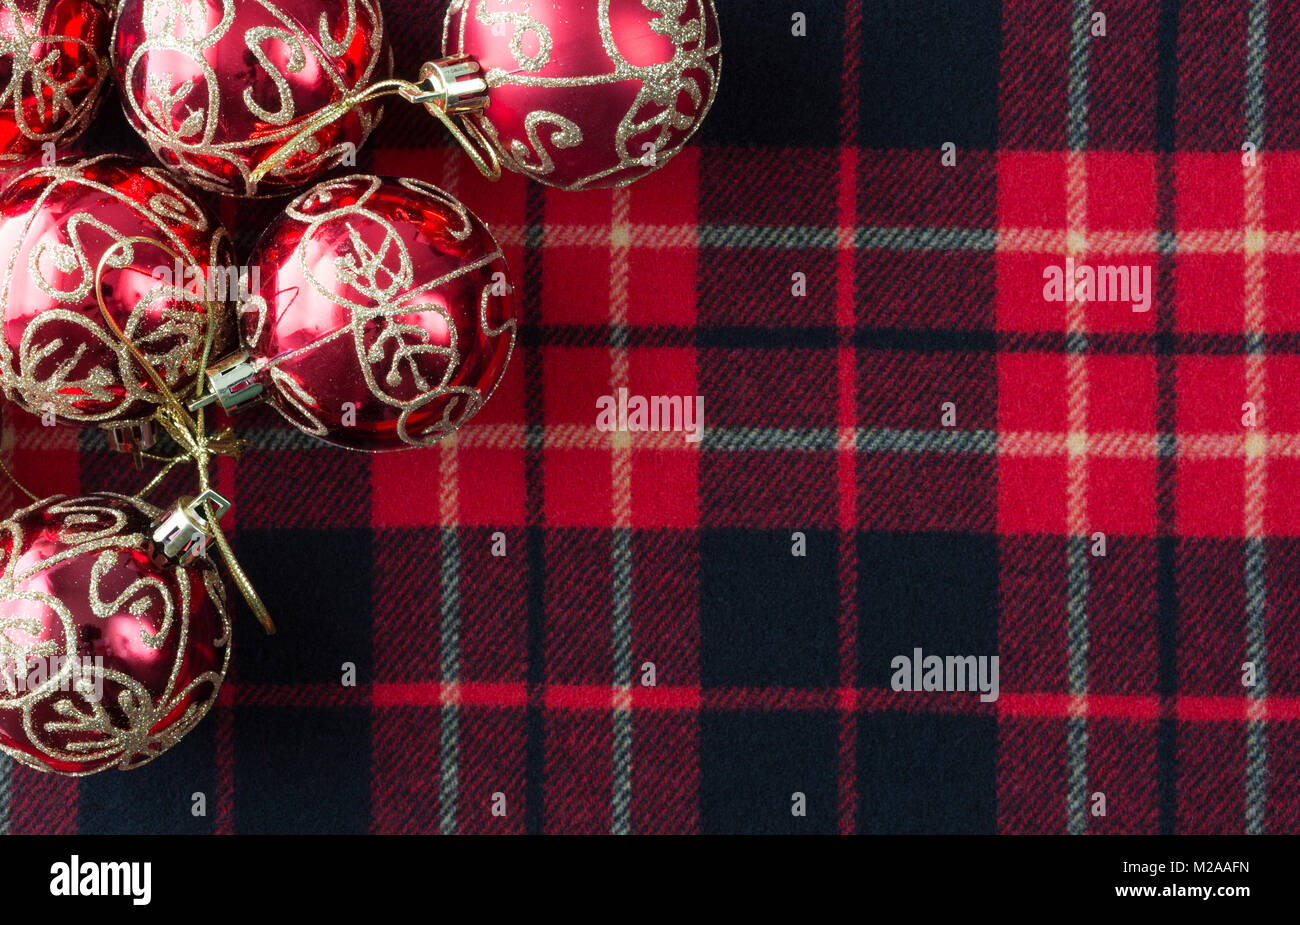 top view of several christmas ornaments atop a red black and white tartan cloth with room for a message